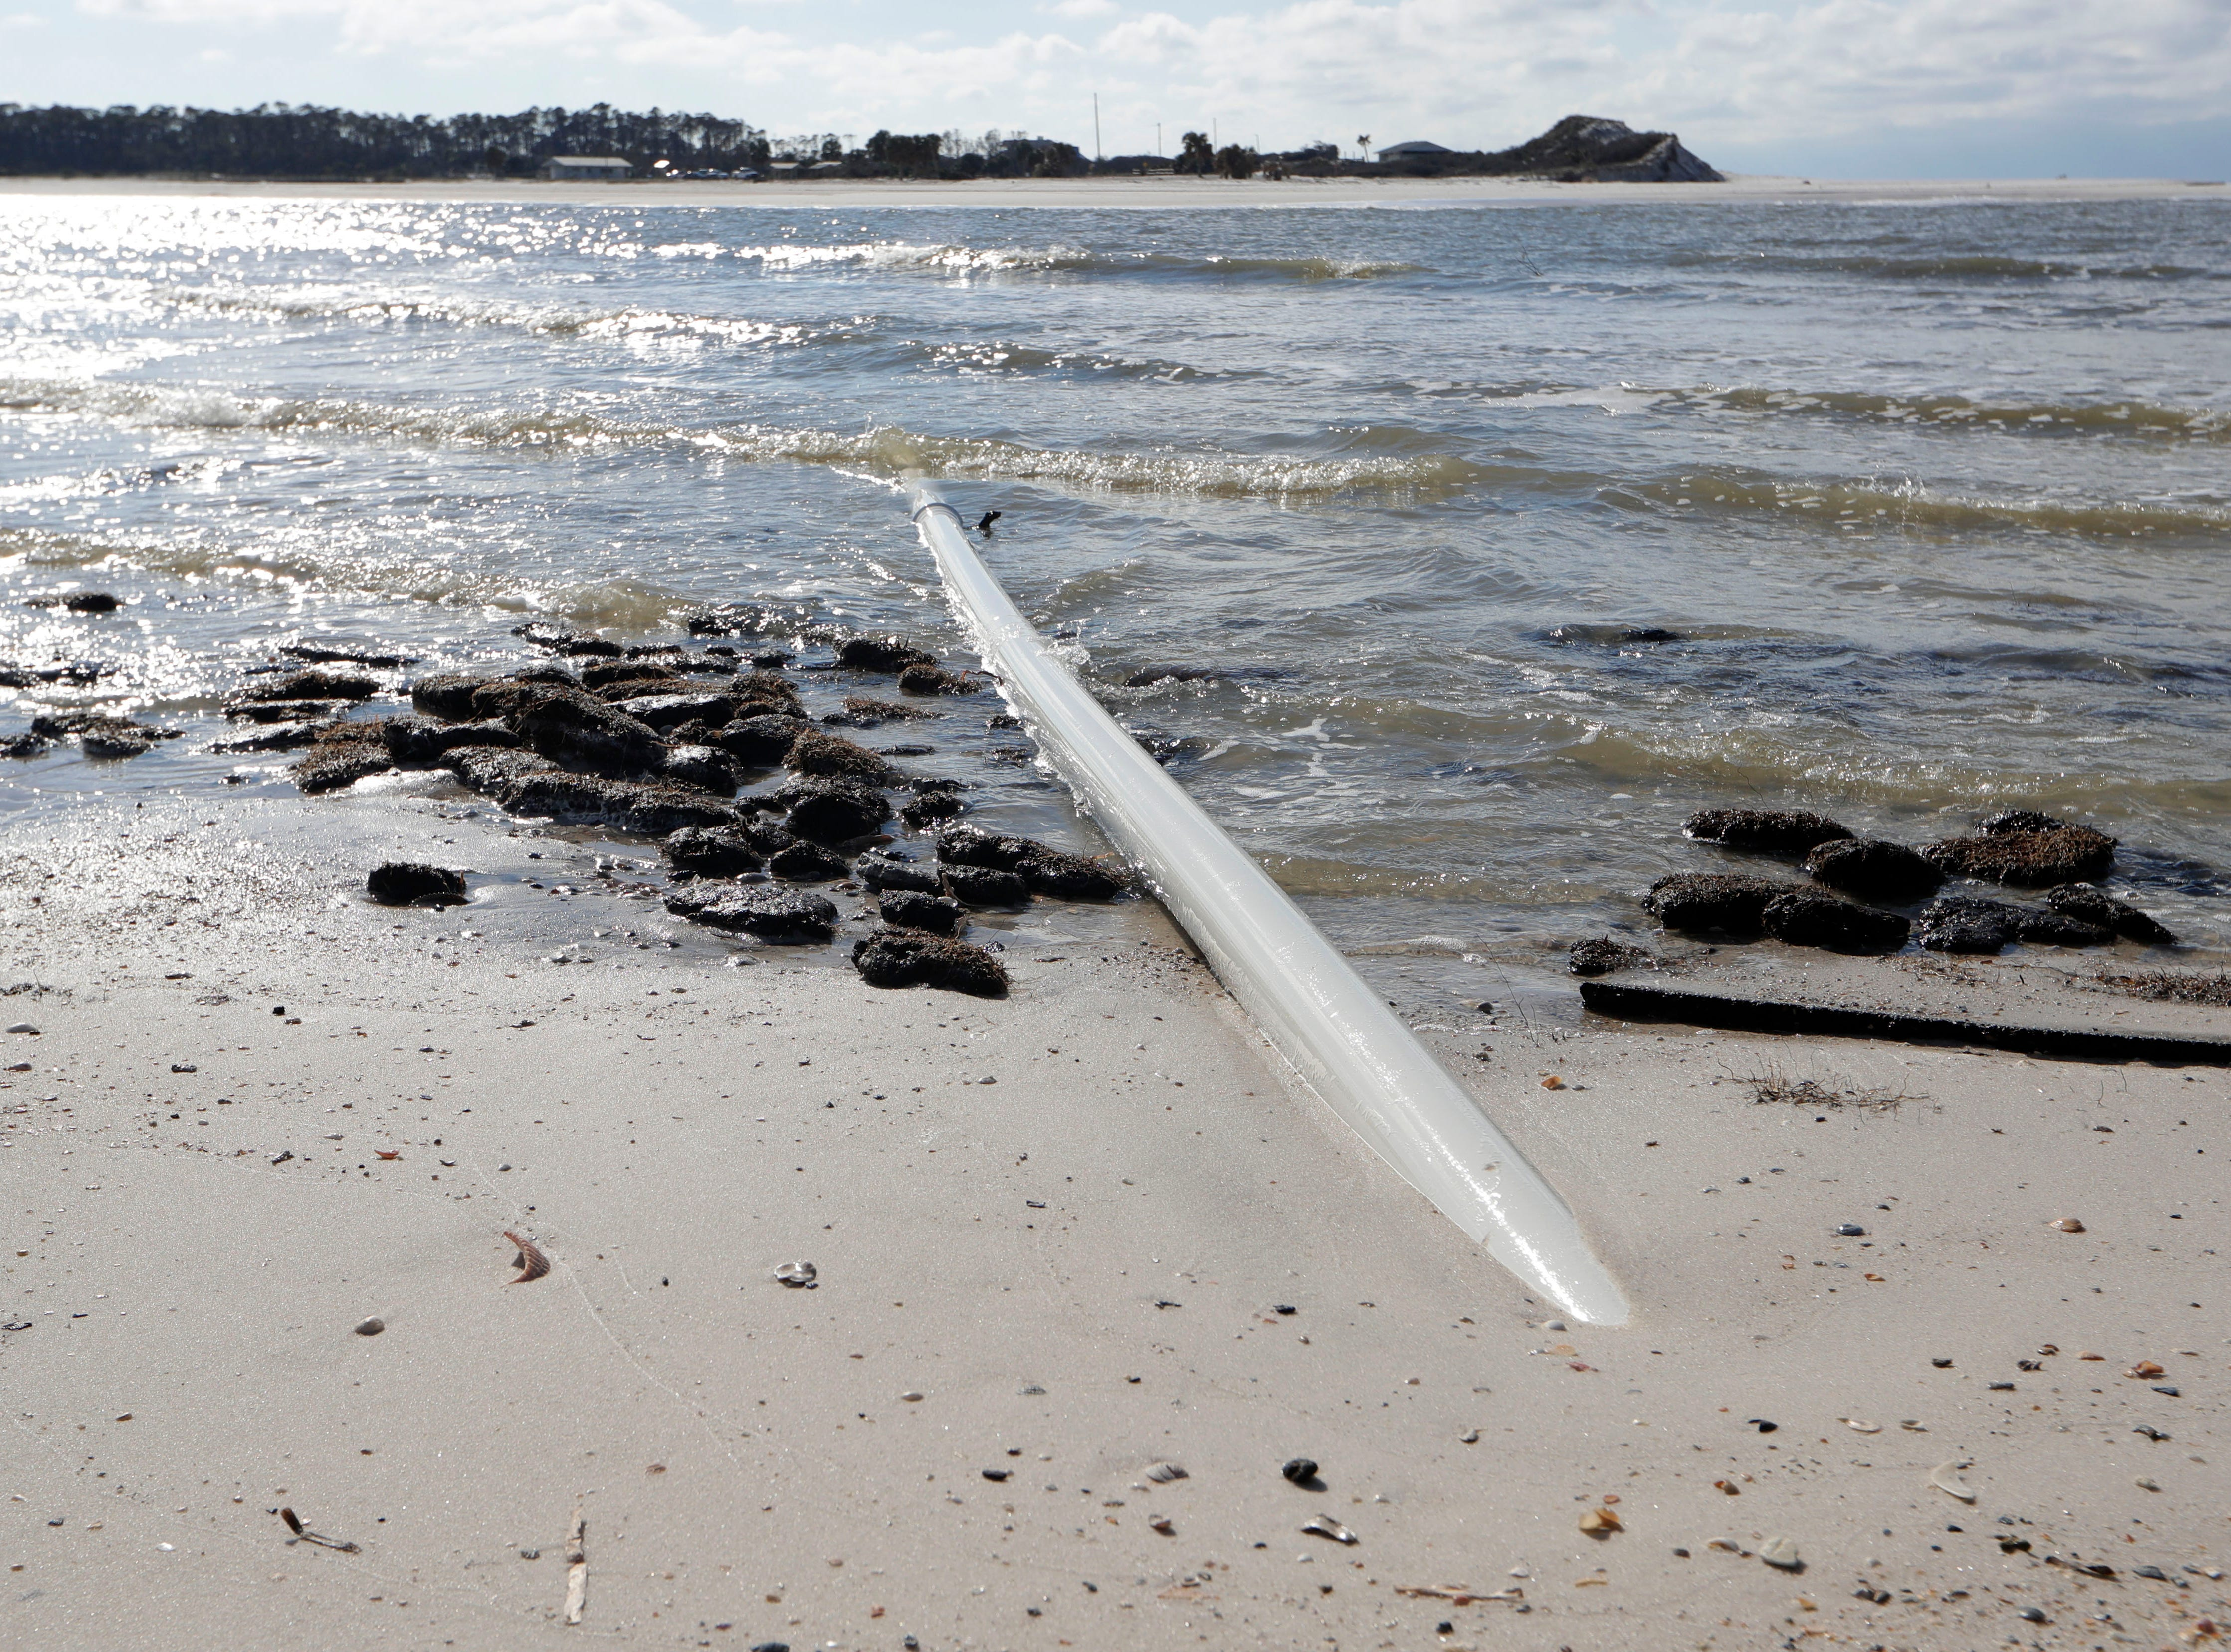 The water line on St. Joseph Peninsula State Park, which was once buried under the sand, is now visible throughout the park, Monday, Jan. 14, 2019. Hurricane Michael caused a massive storm surge which uncovered utility piping and washed massive amounts of sand out to sea.